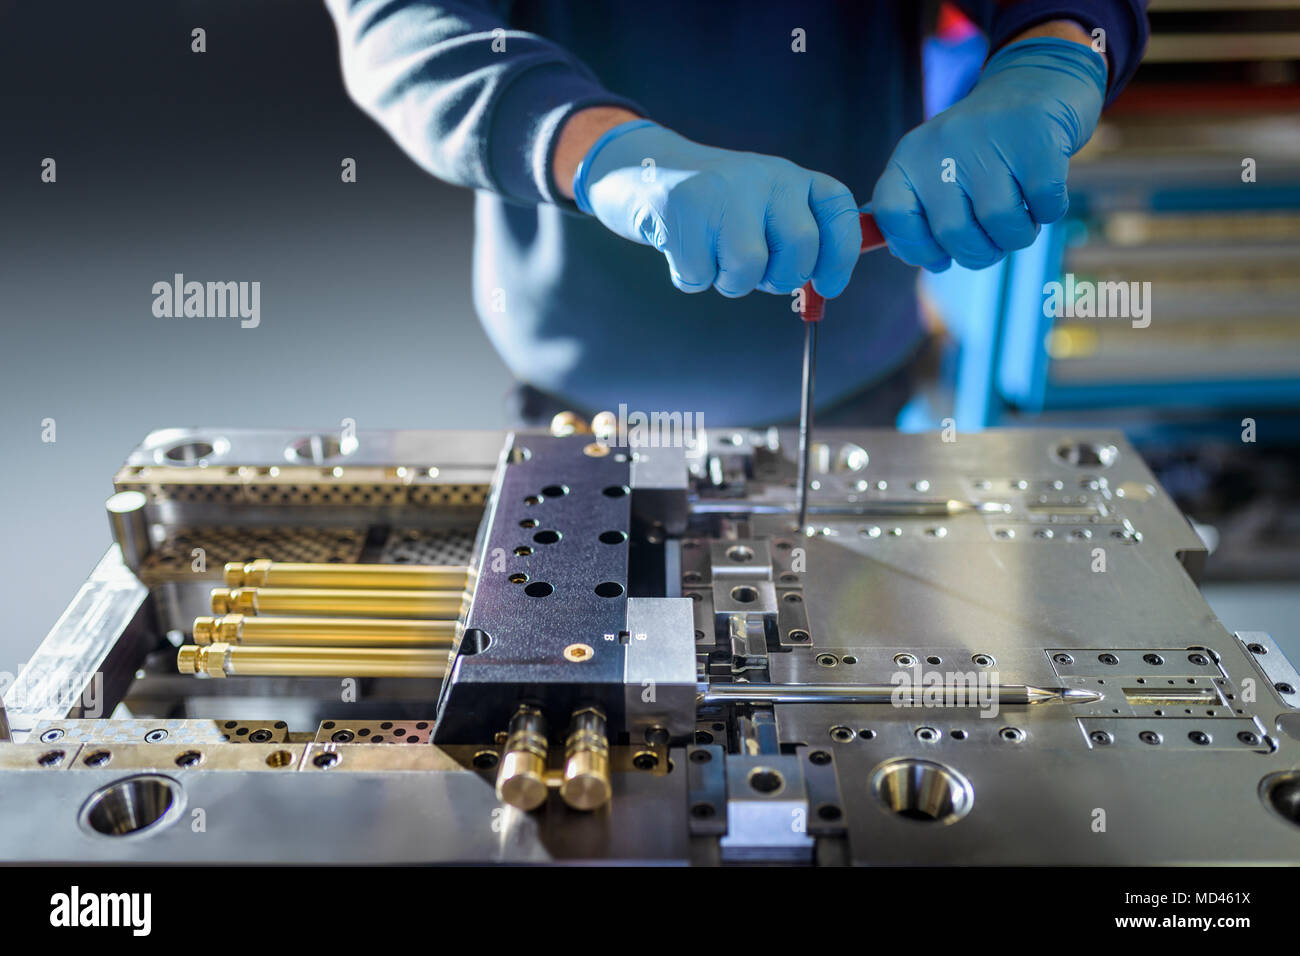 Engineer working on plastic injection mould in precision engineering factory, mid section, close up - Stock Image